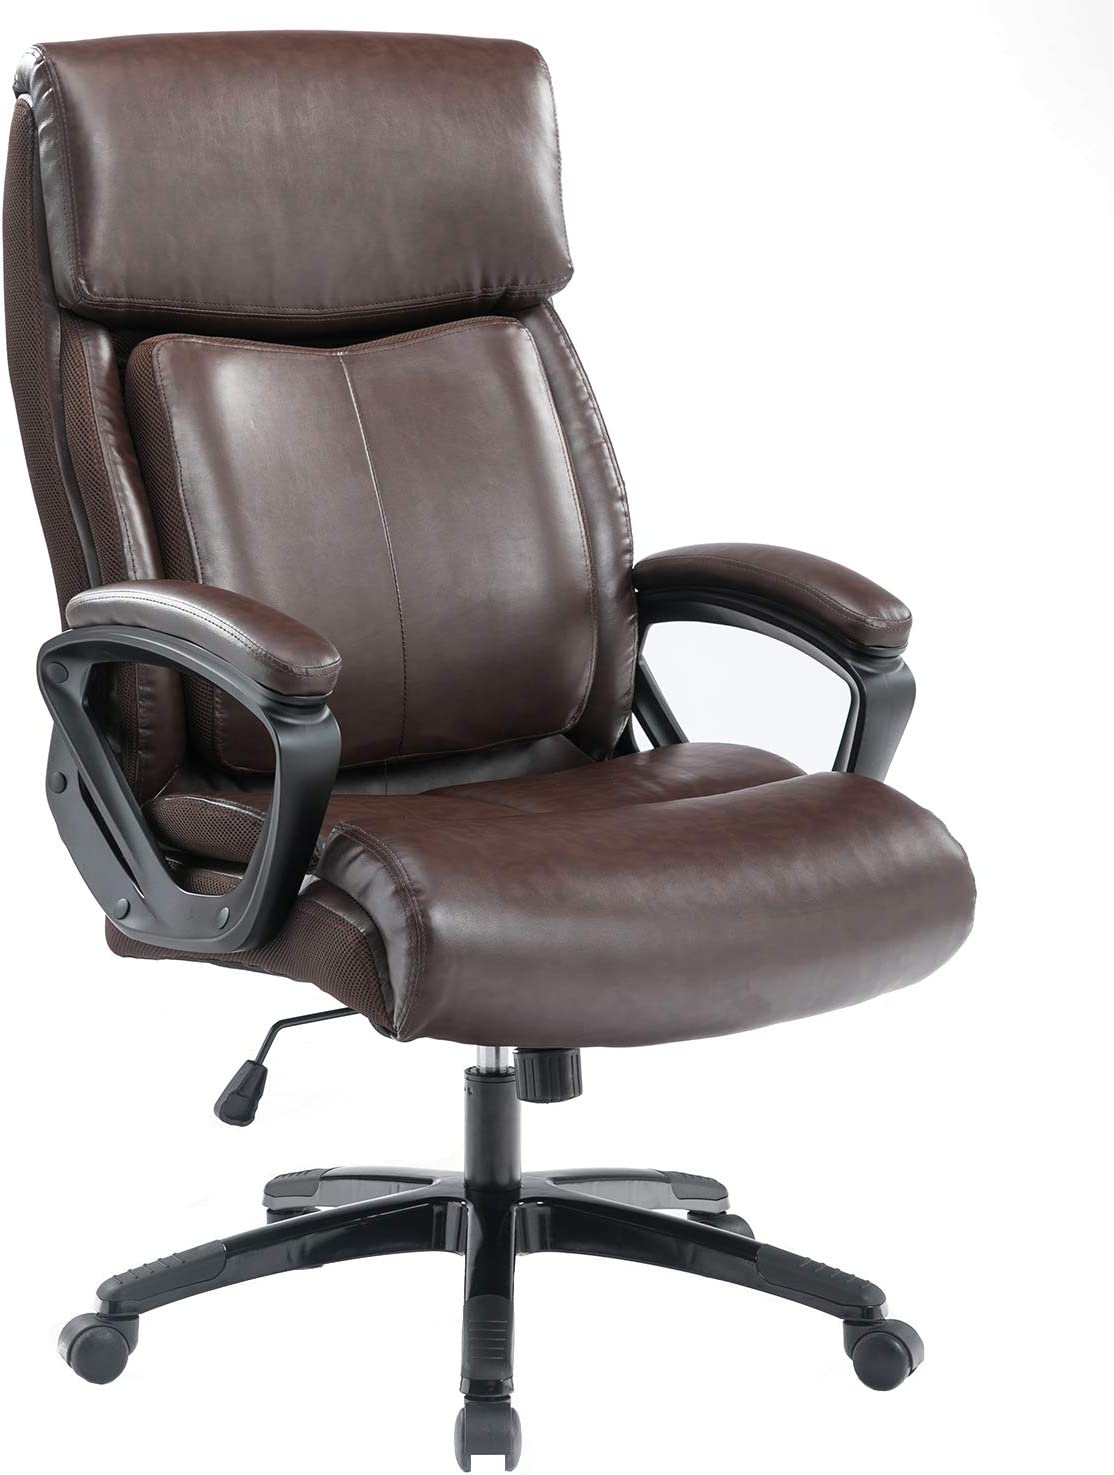 BOSMILLER Office Chair High Back Computer Chair Ergonomic Desk Chair, PU Leather Adjustable Height Modern Executive Swivel Task Chair with Padded Armrests and Lumbar Support,Black … (9080-BROWN)